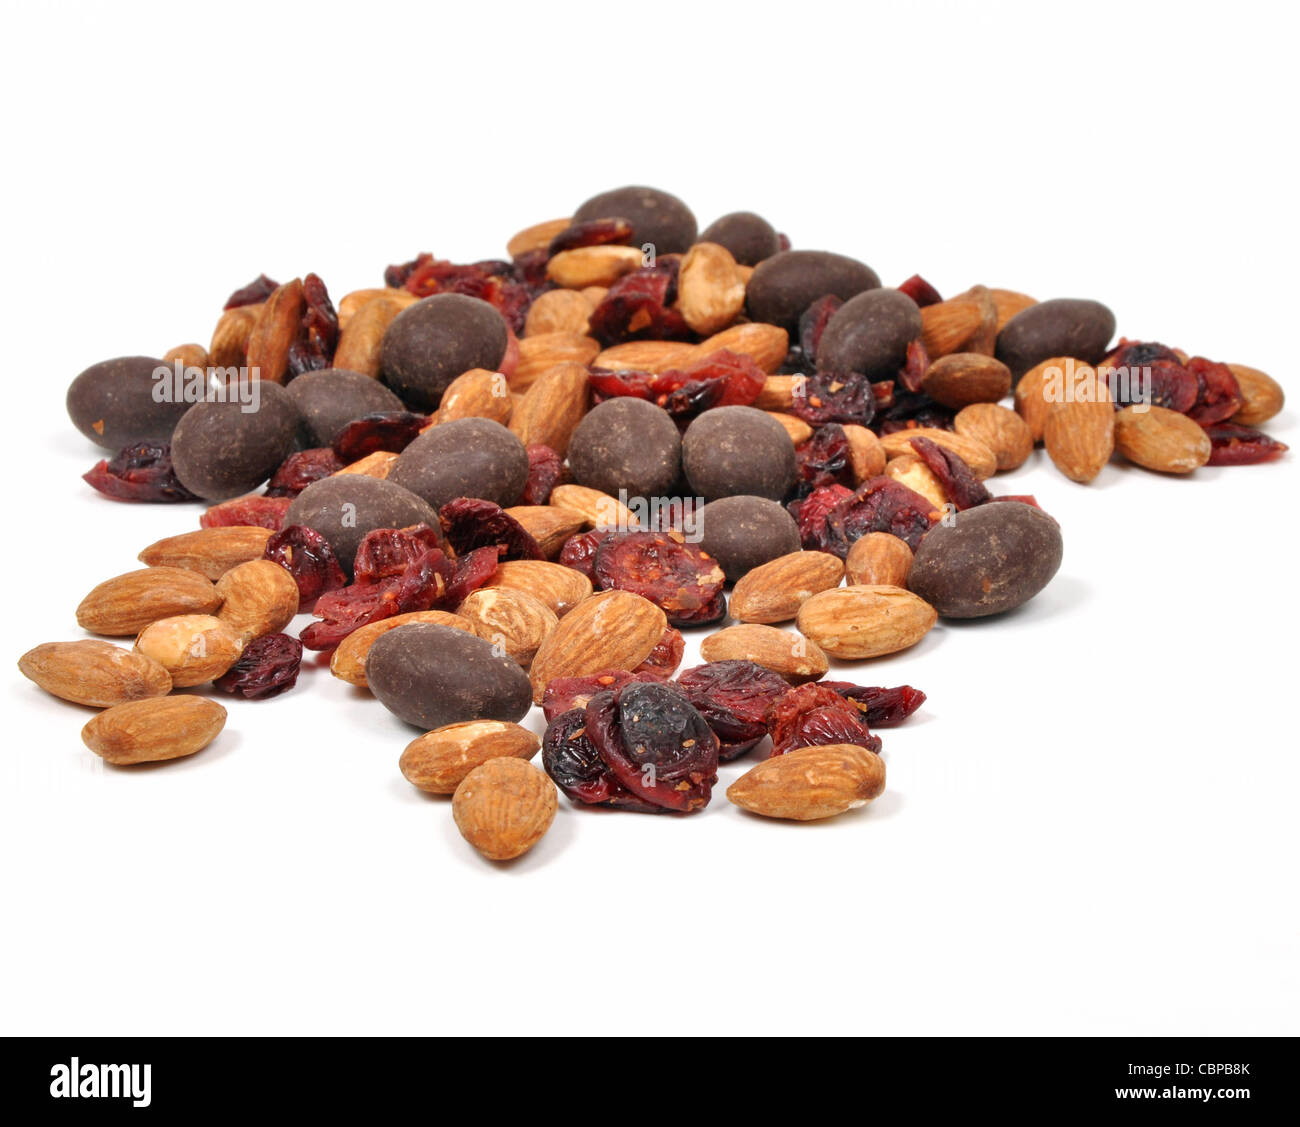 Closeup of a snack consisting of nuts, dried fruit and chocolate on a white background Stock Photo